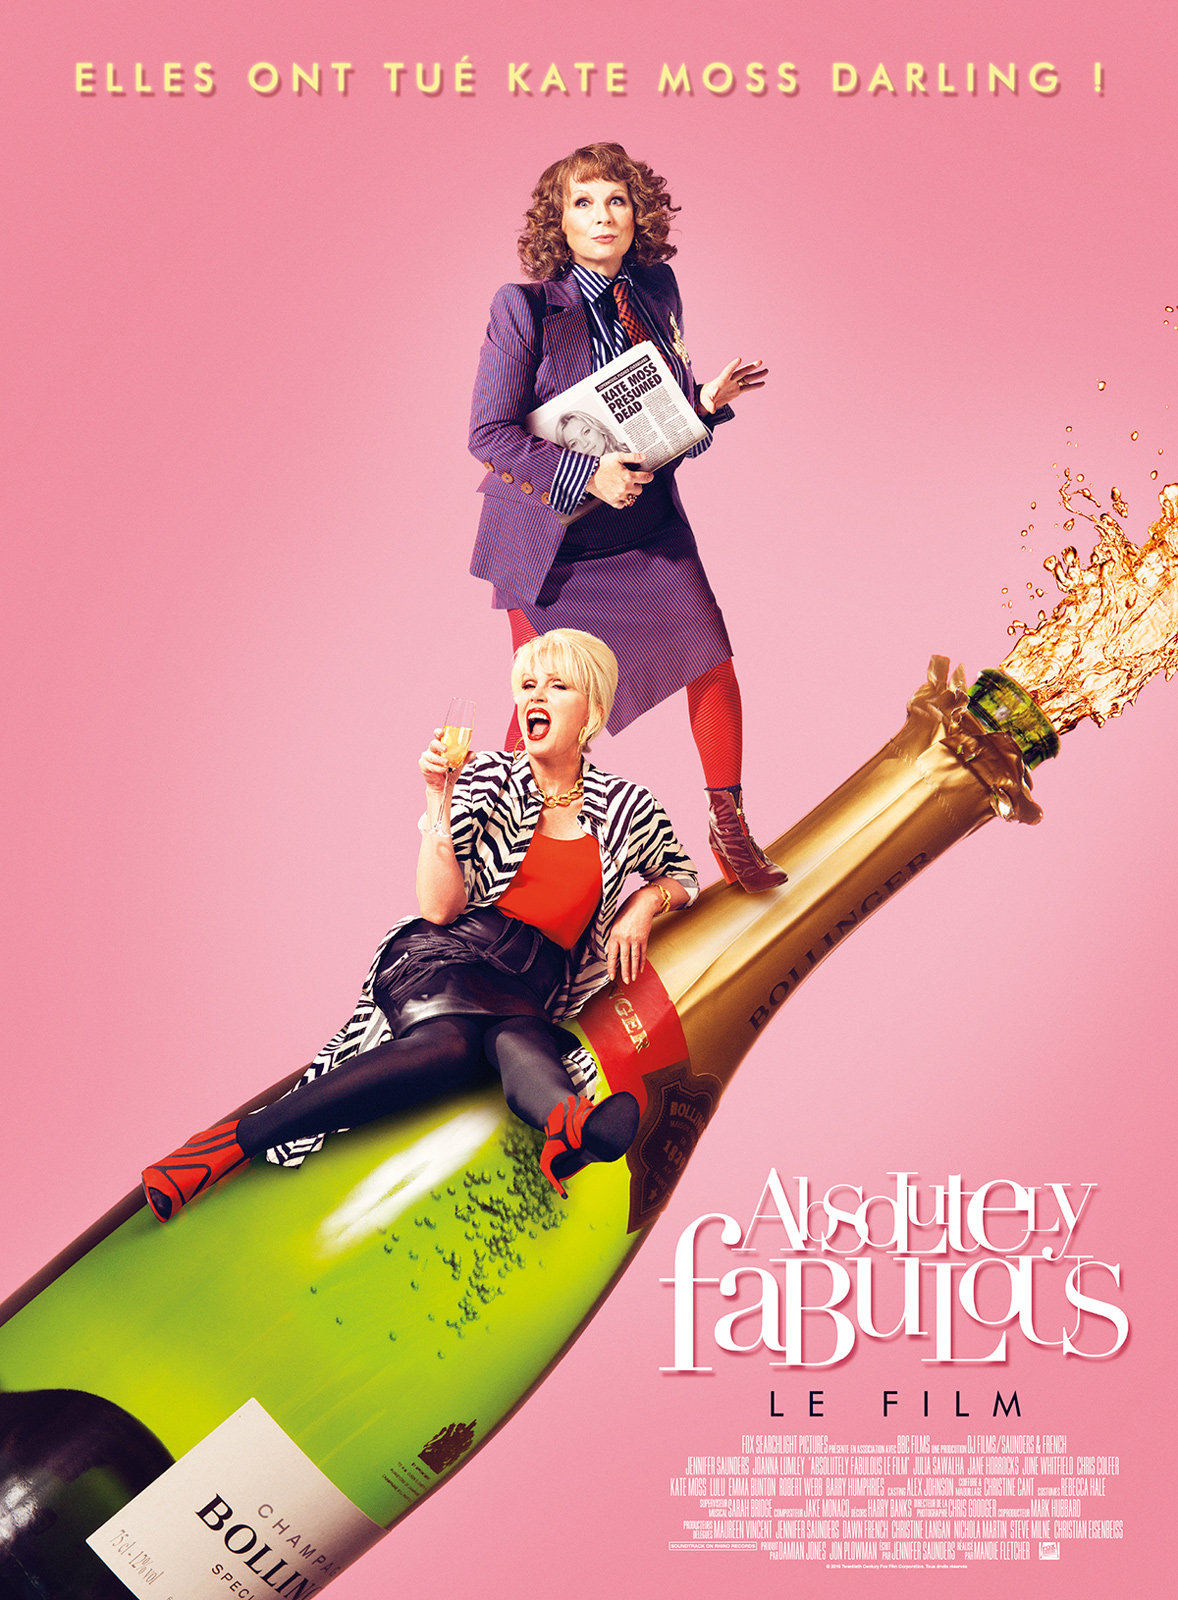 Absolutely Fabulous : Le Film ddl